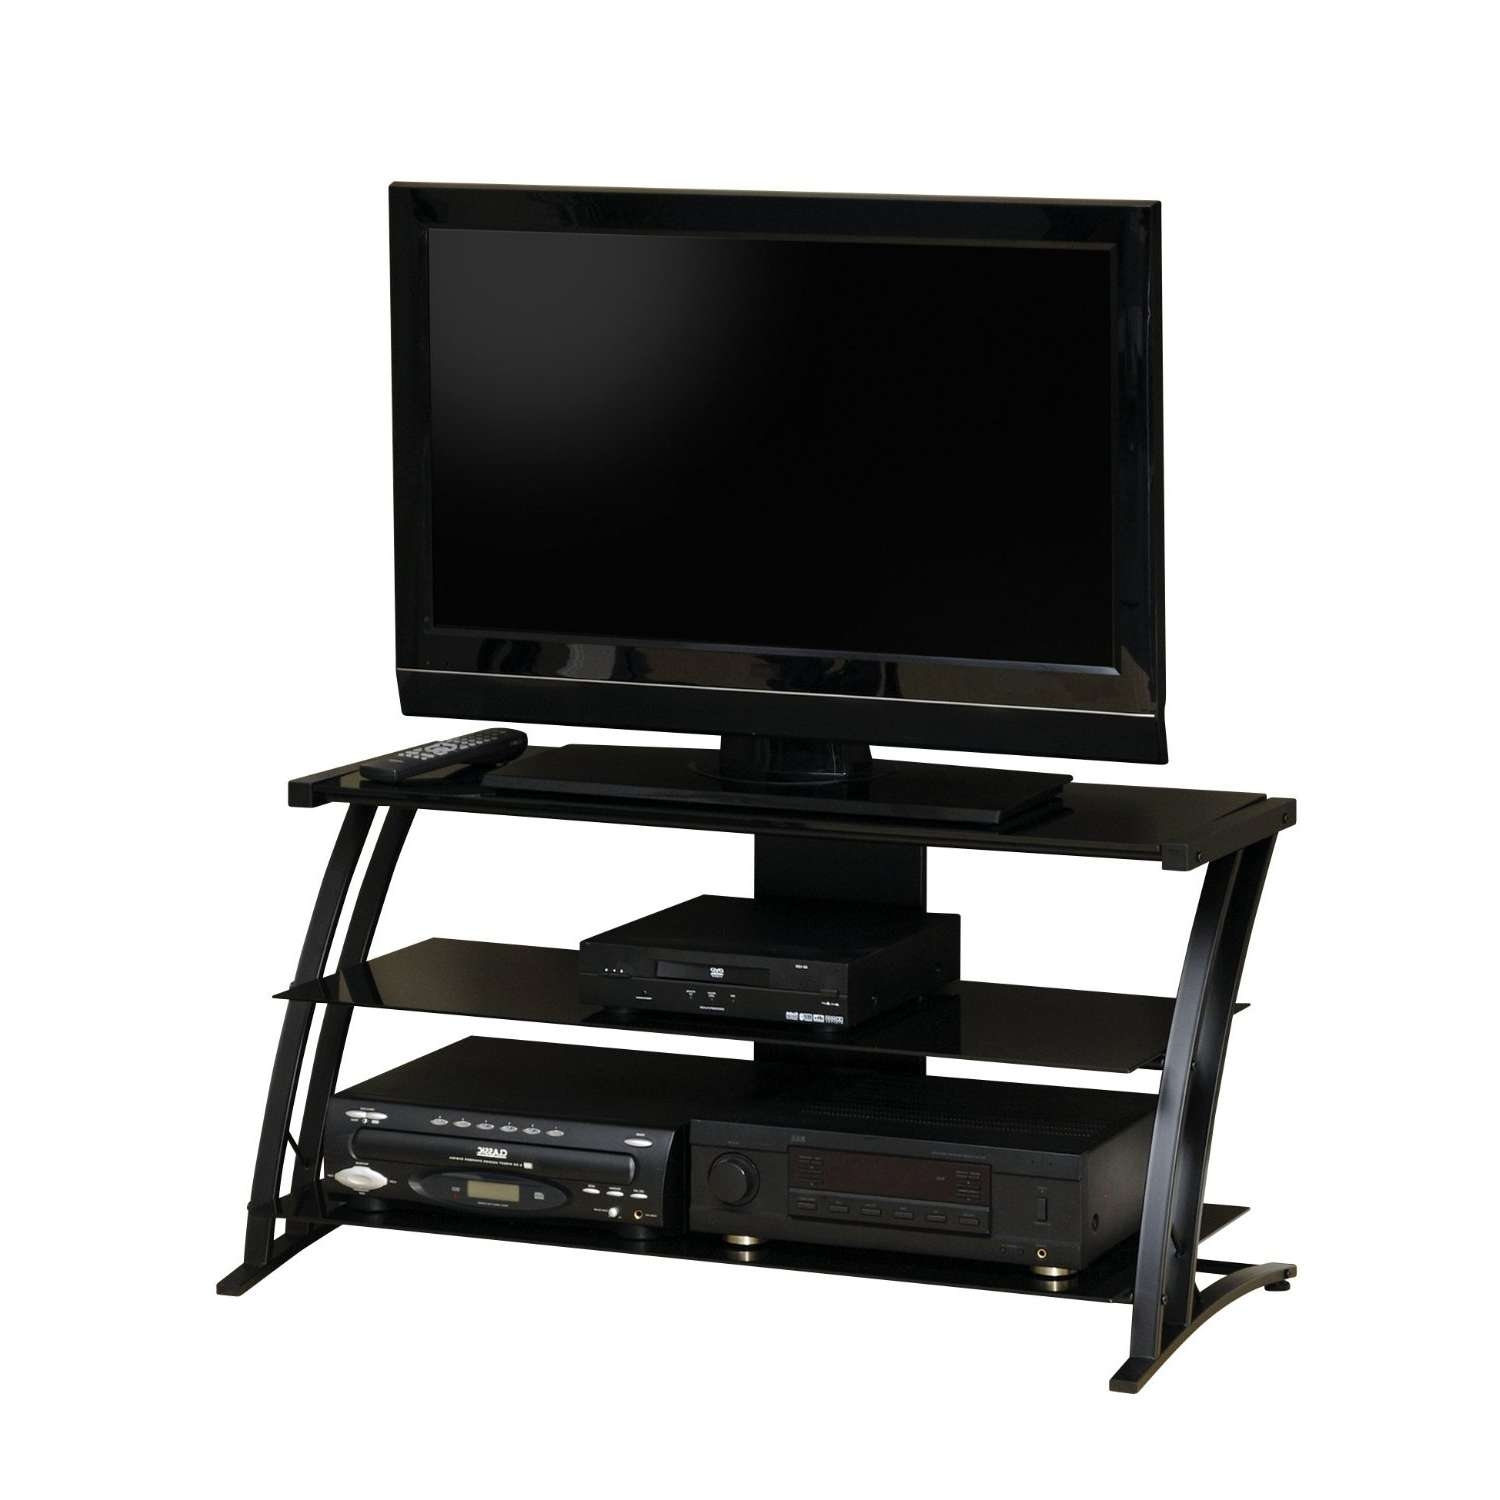 Tv Stands: 7 Best Selling Flat Screen Tv Stands 2017 Intended For Sonax Tv Stands (View 15 of 15)